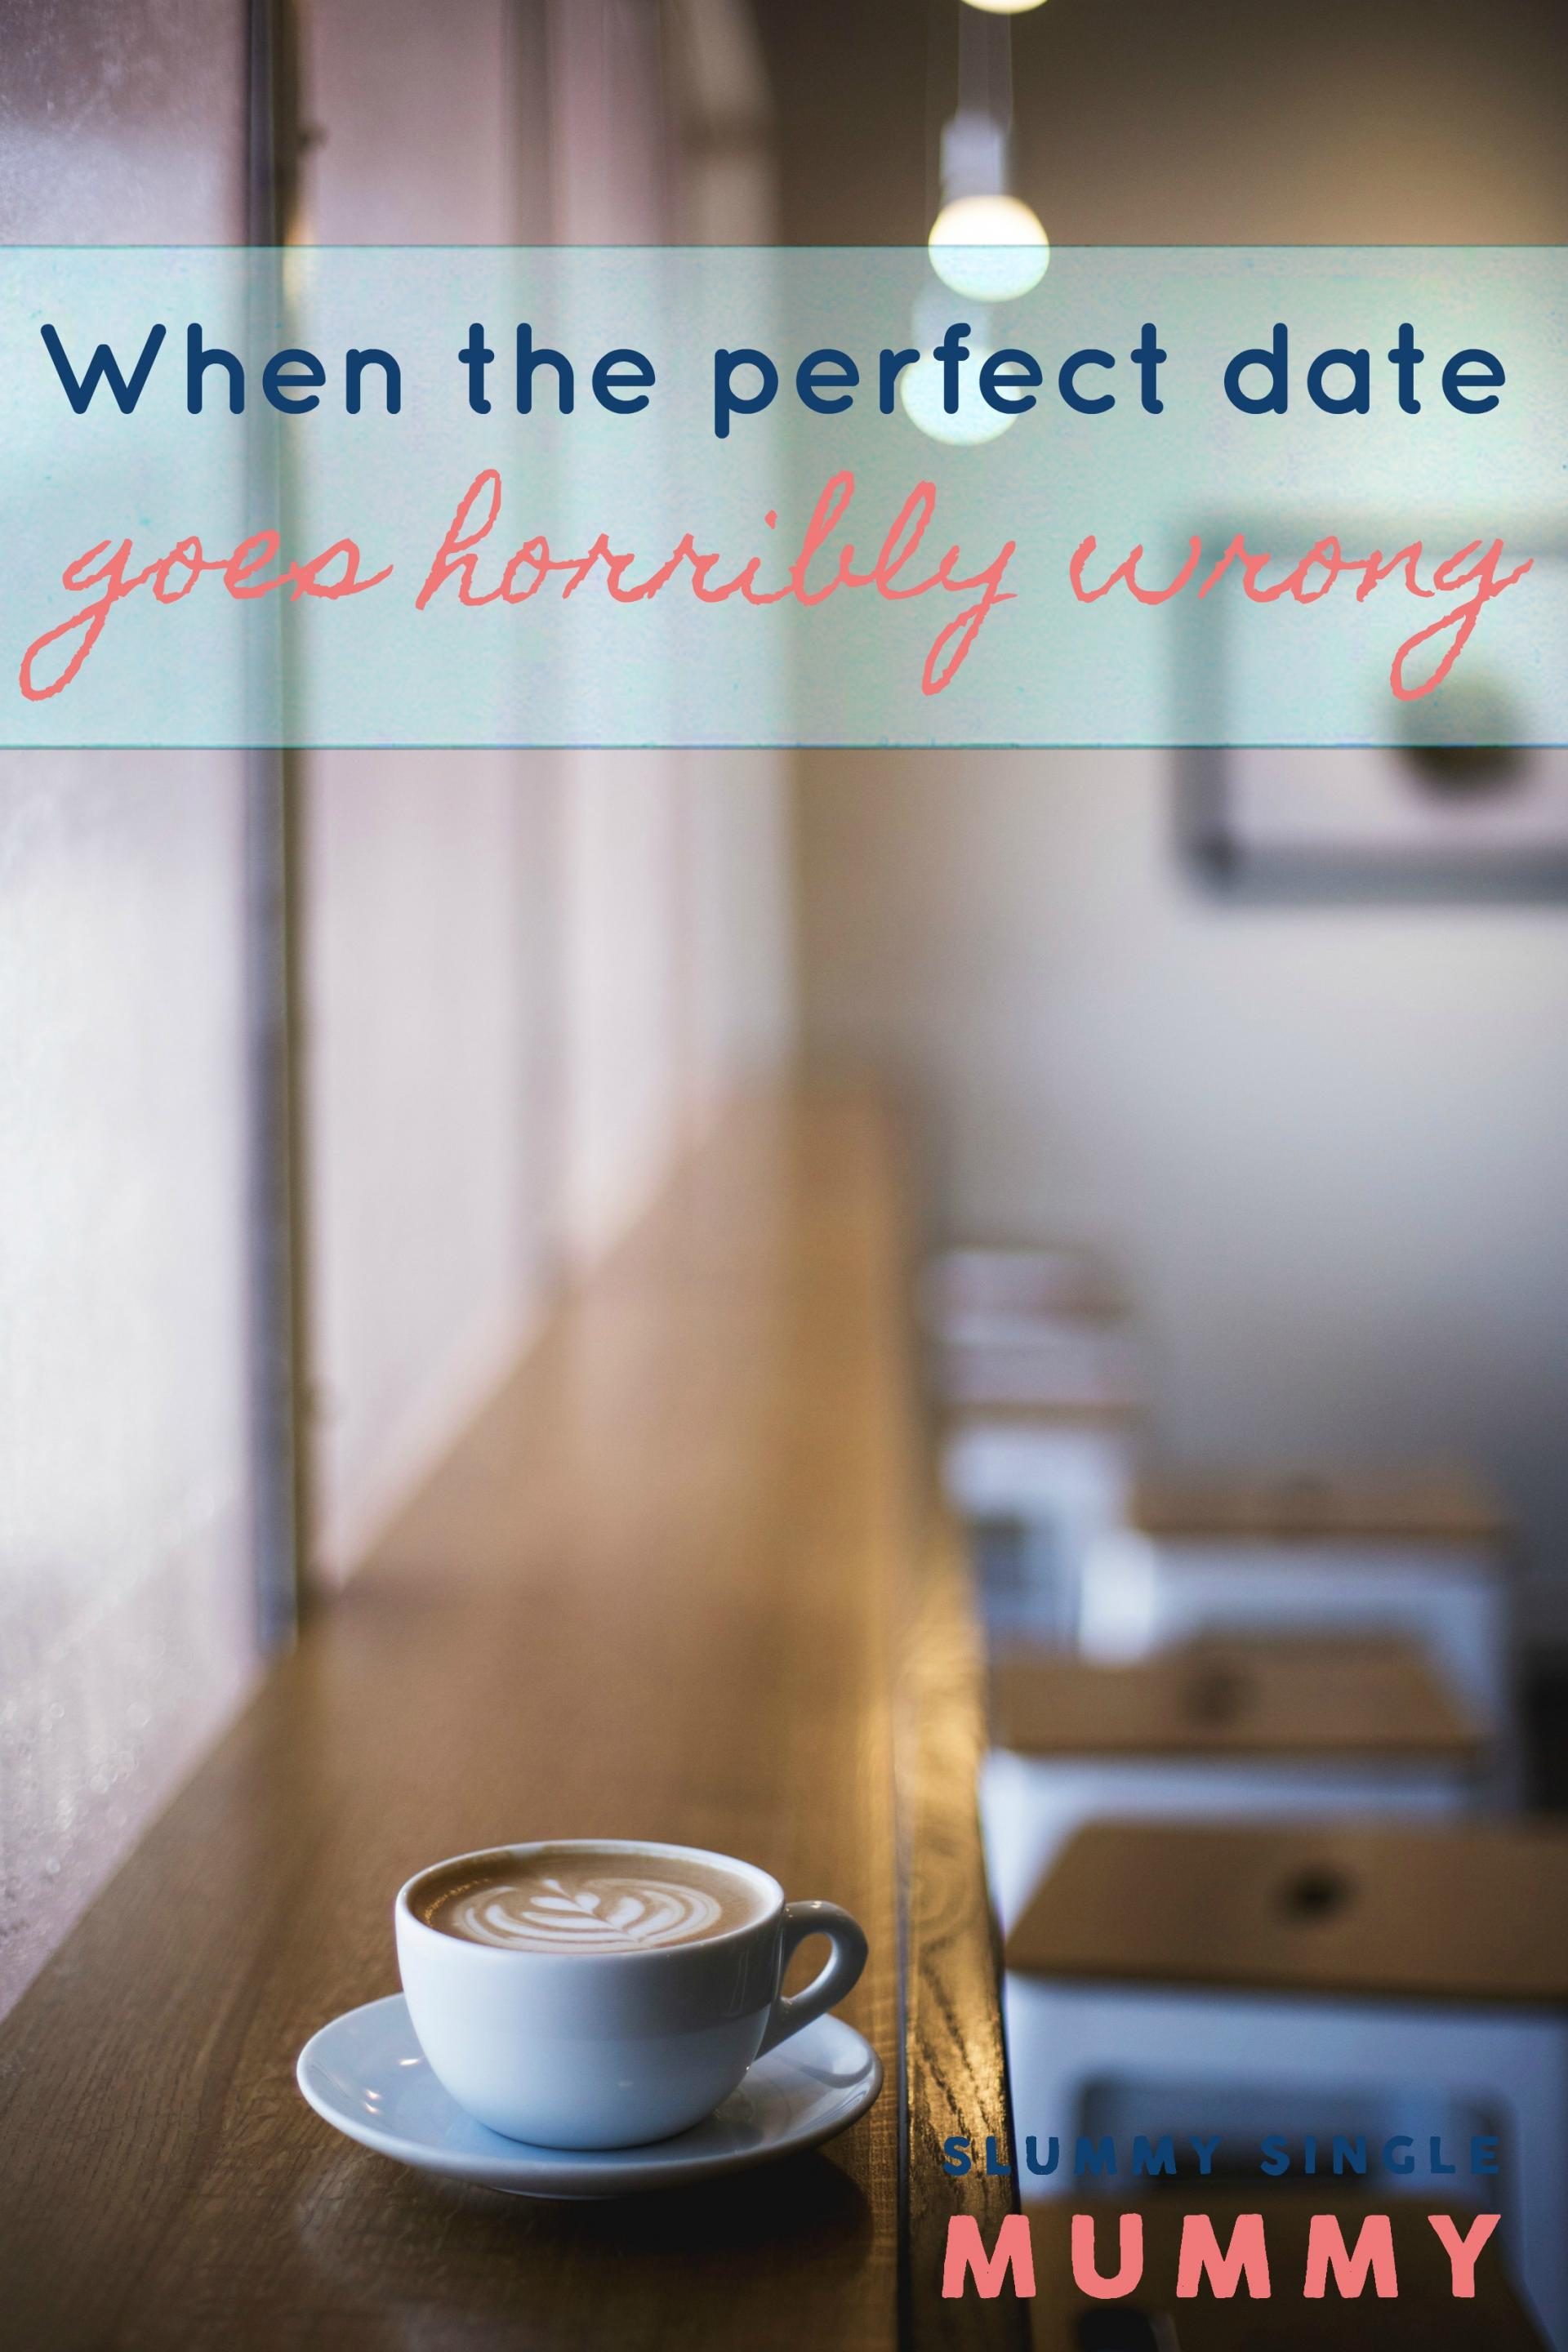 It was meant to be the perfect date, but it definitely did not go to plan! If you're looking for perfect date ideas, here's how NOT to do it.